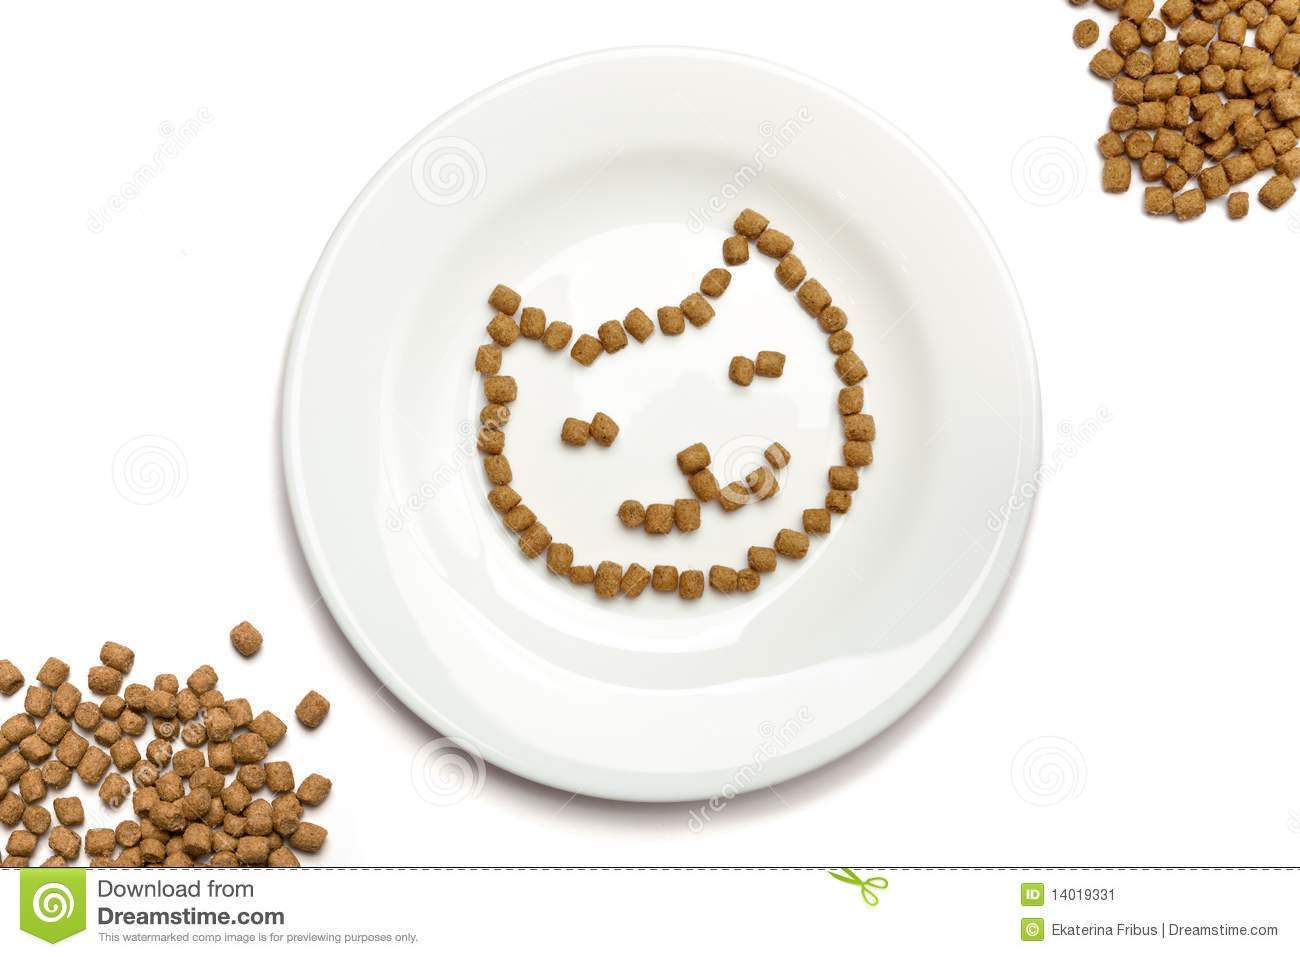 Dry Cat Food Forming Cat S Face On A White Plate And Heaps Of Food